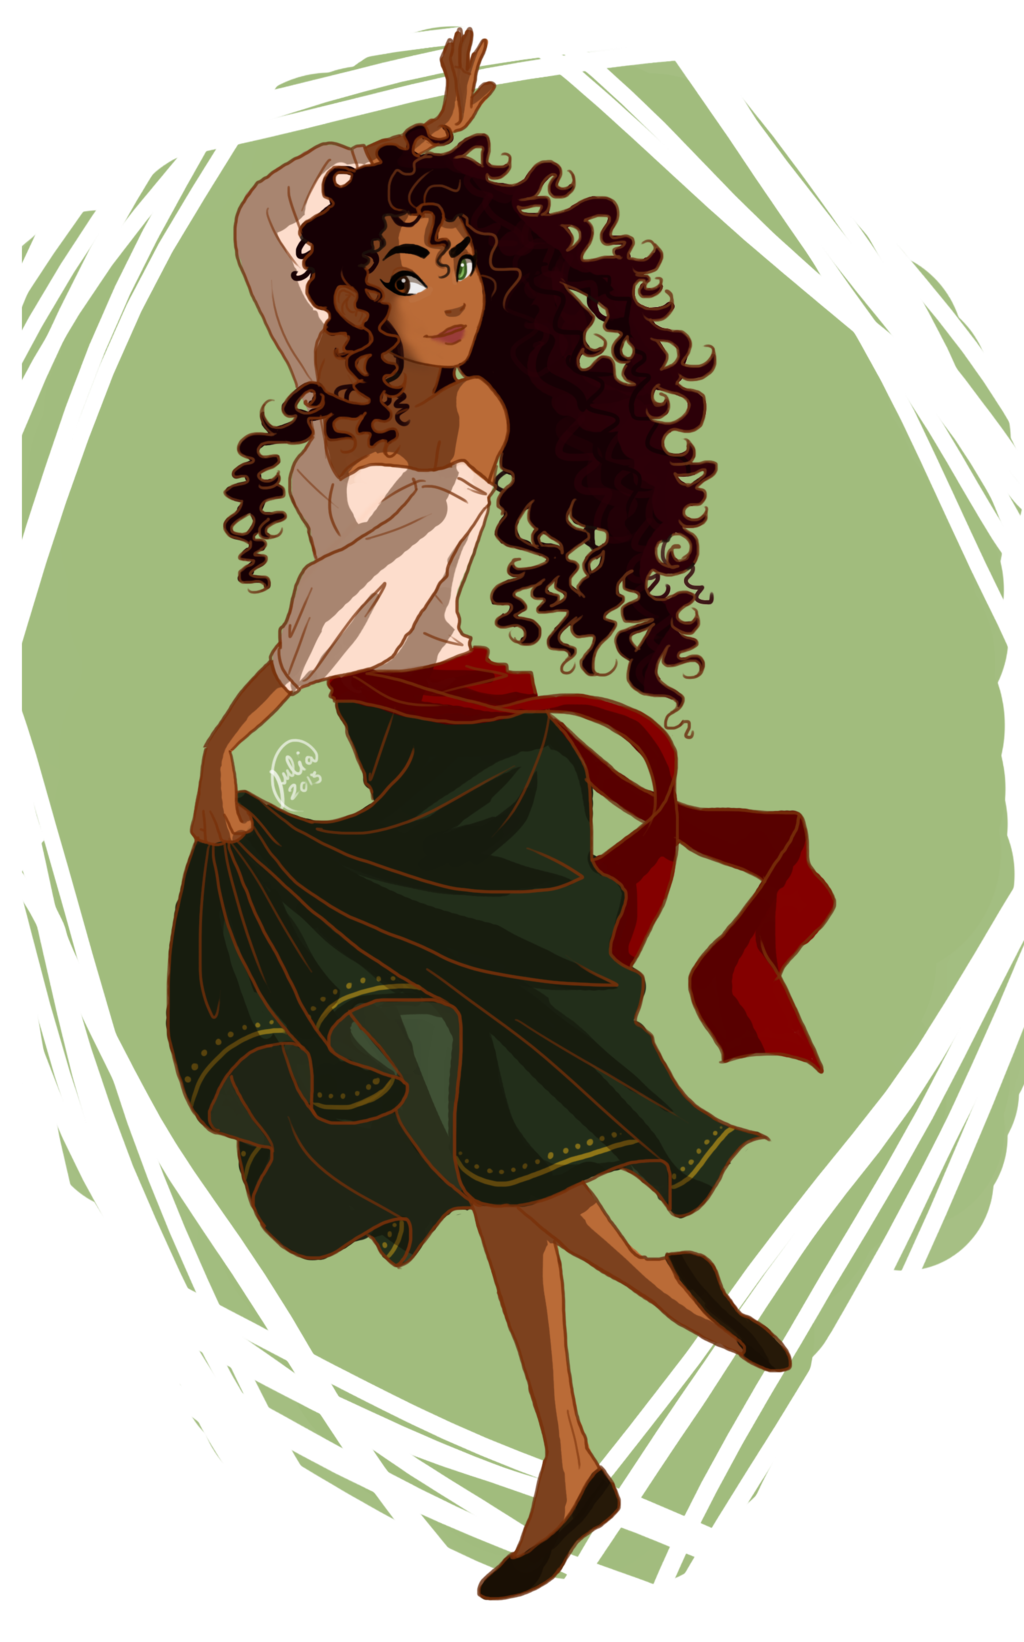 Dancing Character Inspiration Girl With Brown Hair Disney Fan Art